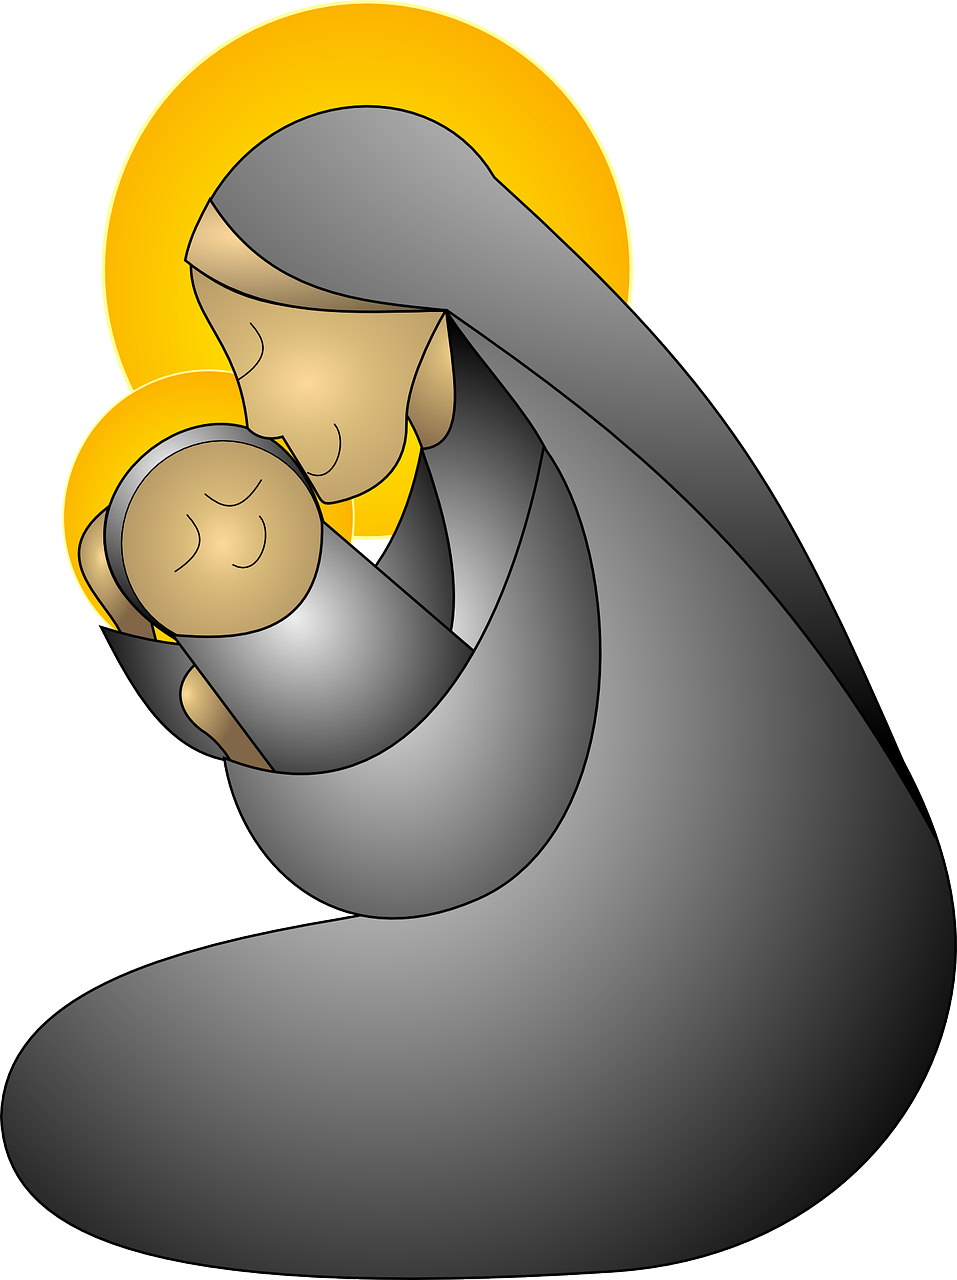 Emergency clipart life threatening. Obstetric care dimensions of